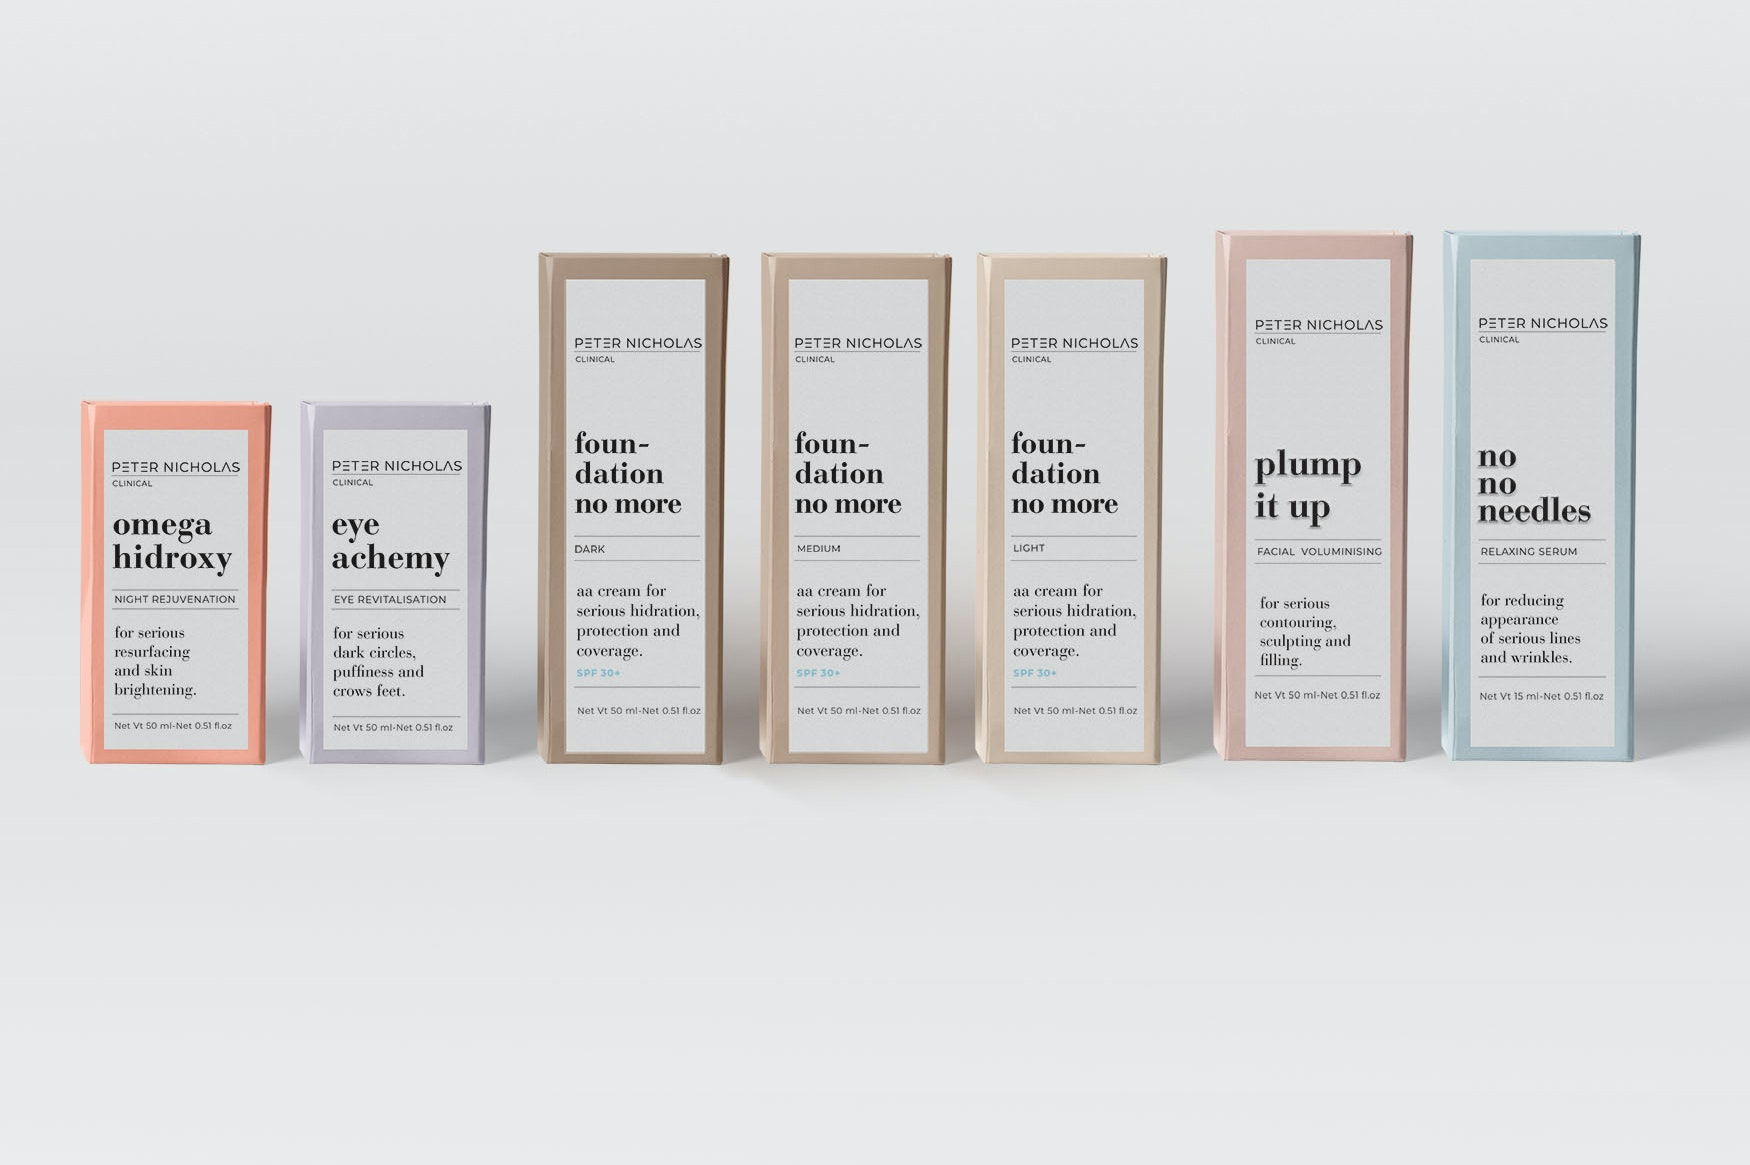 Peter Nicholas pastel packaging